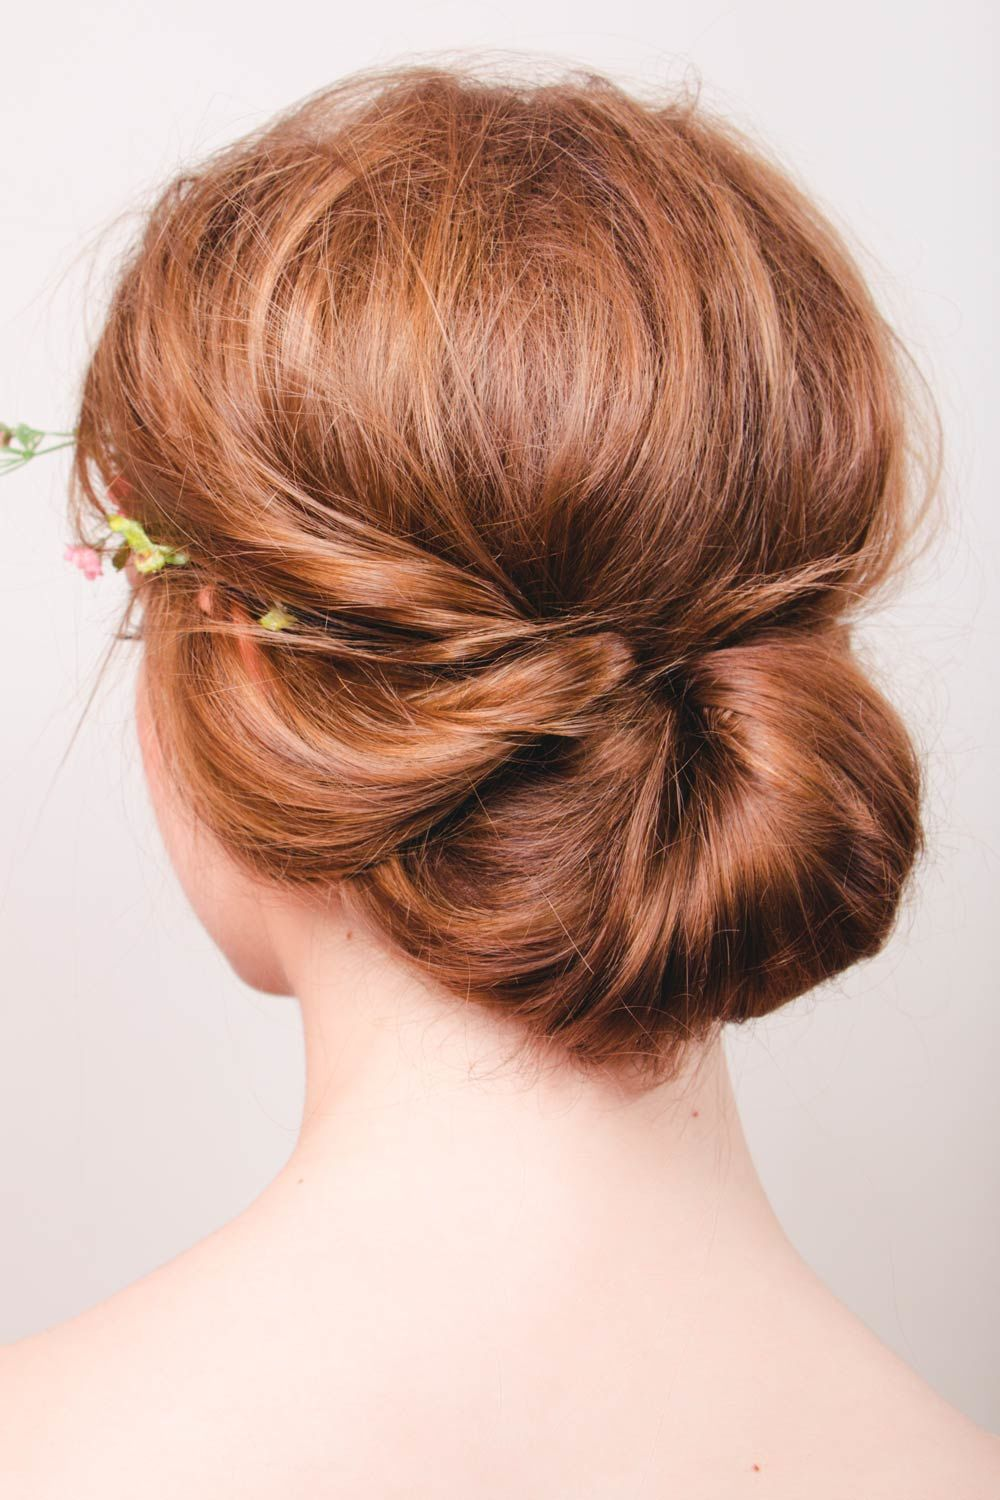 Hairstyle With Low Twisted Bun